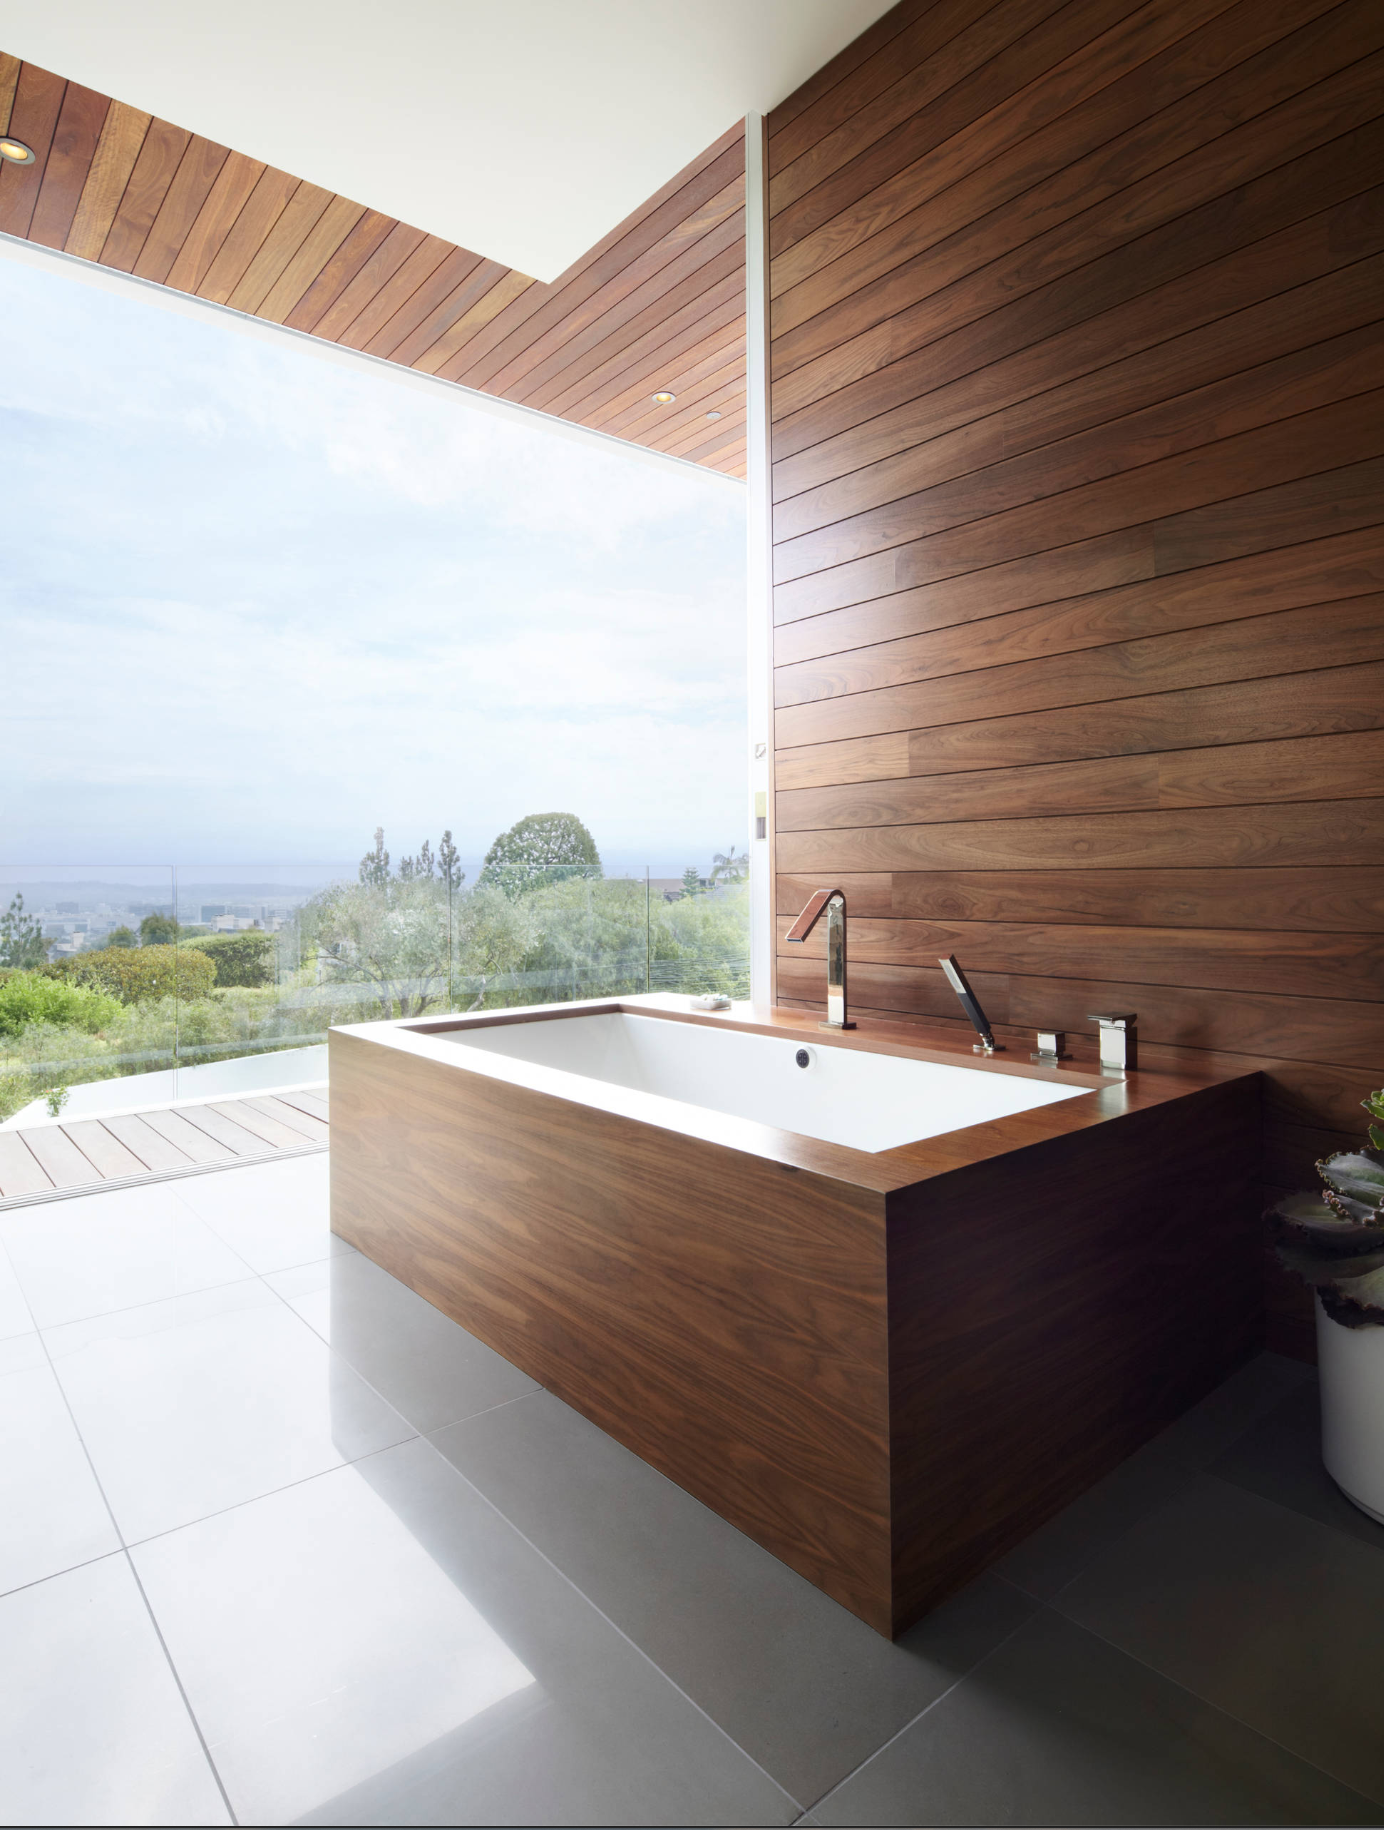 A contemporary bathroom with smooth wood panels on the wall as well as around the bathtub.